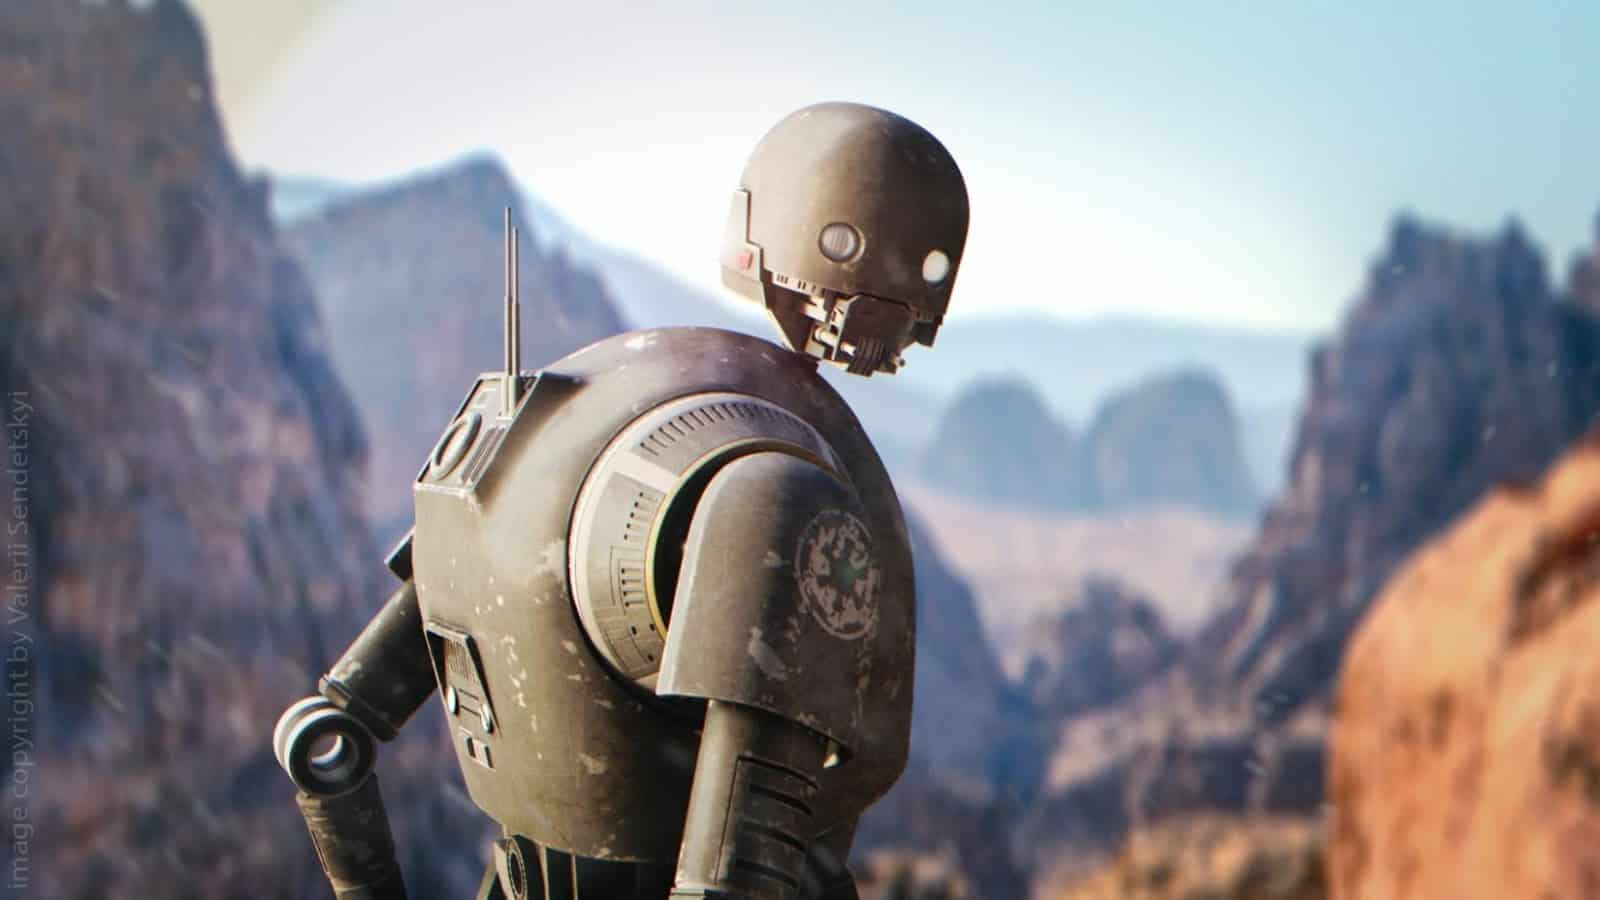 3 best game engines for Newbie Unity, Construct and Godot